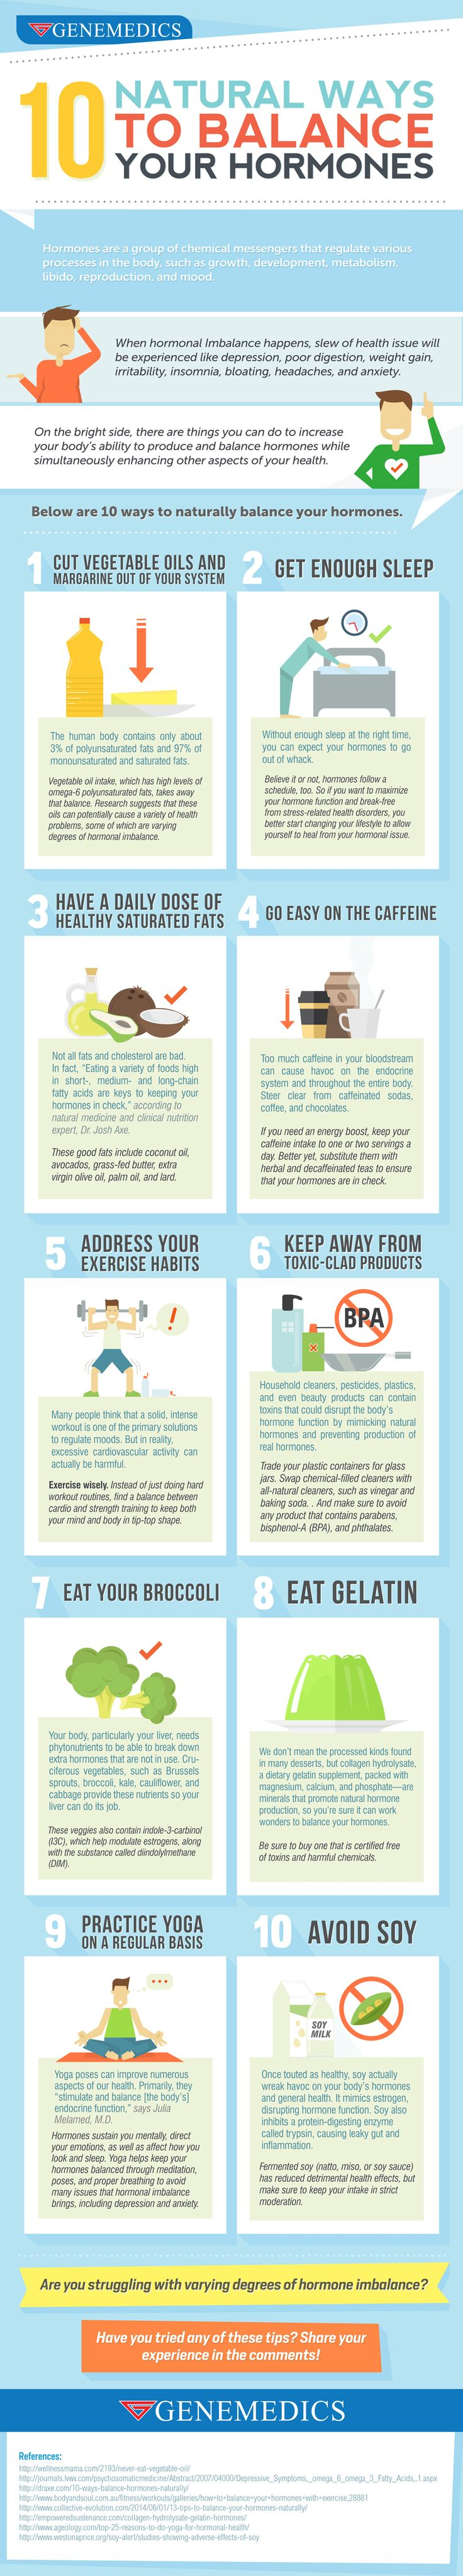 10 natural ways to balance your hormones infographic